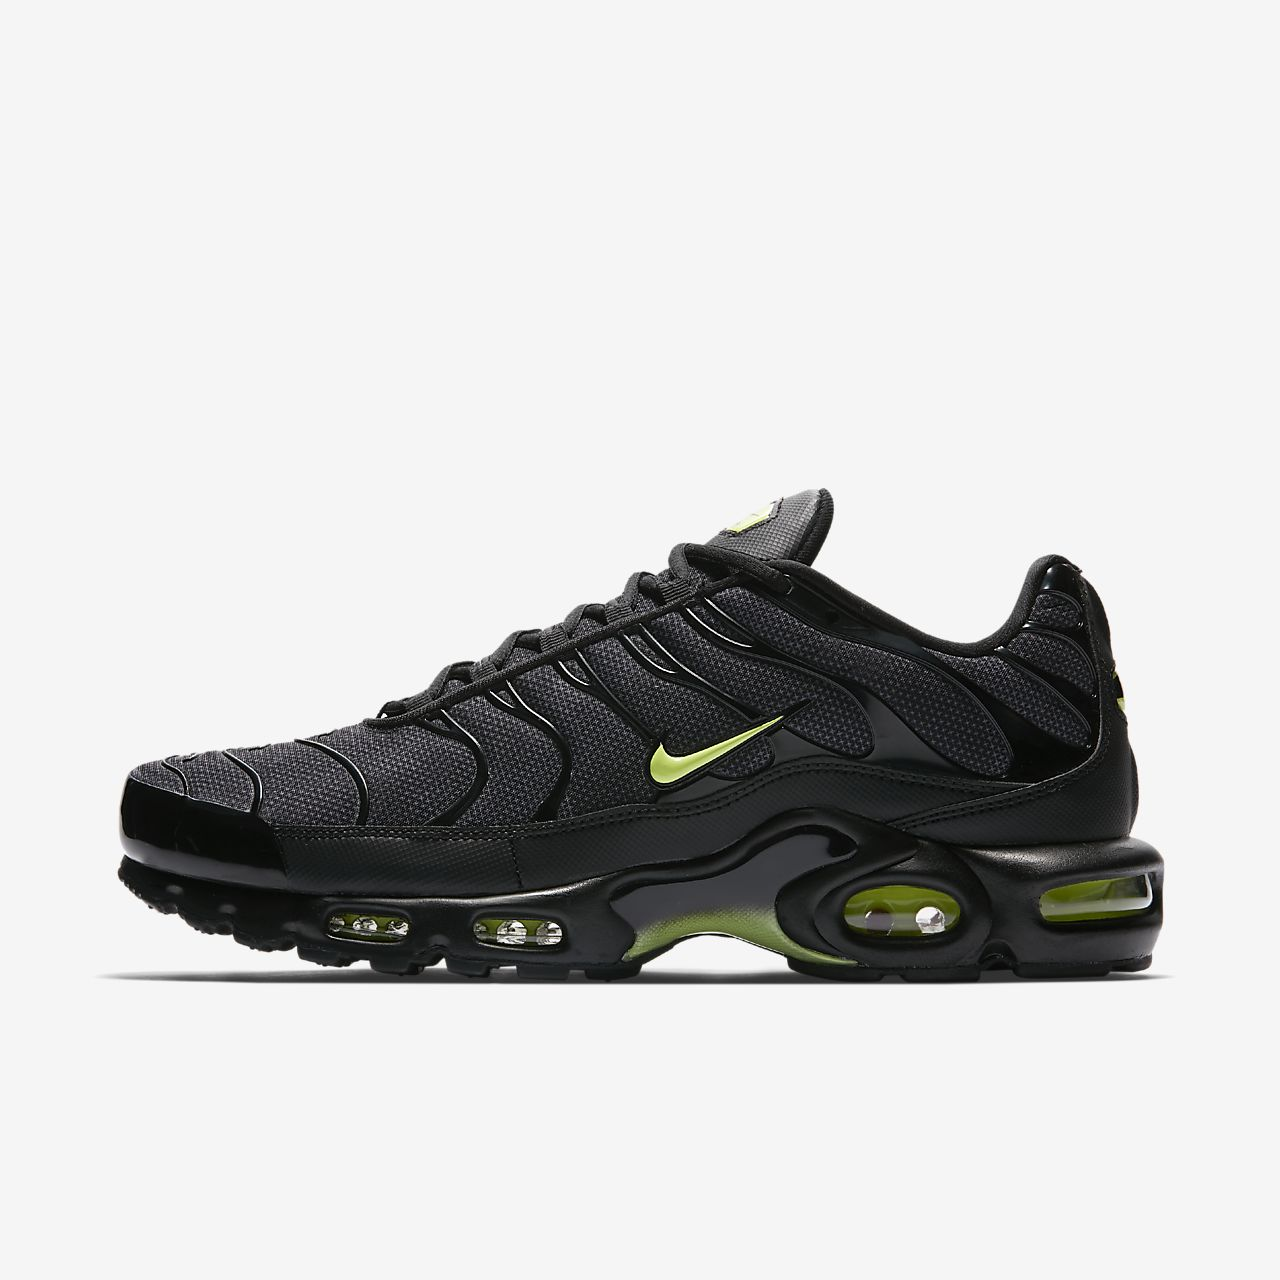 best service 2dac5 4e033 Nike Air Max Plus SE